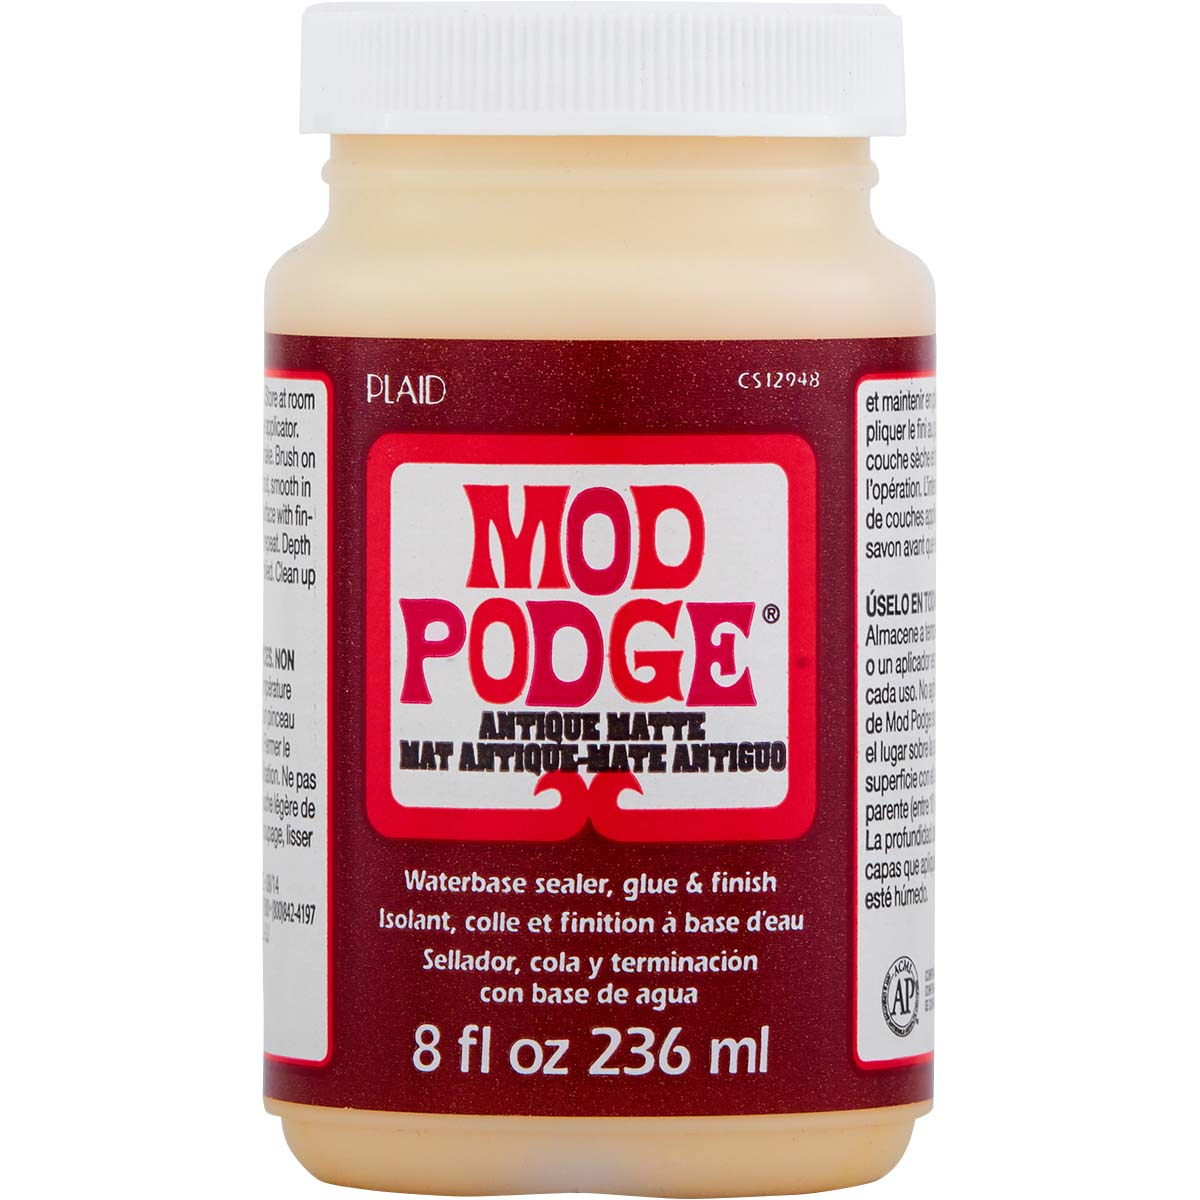 Mod Podge ® Antique Matte, 8 oz. - CS12948